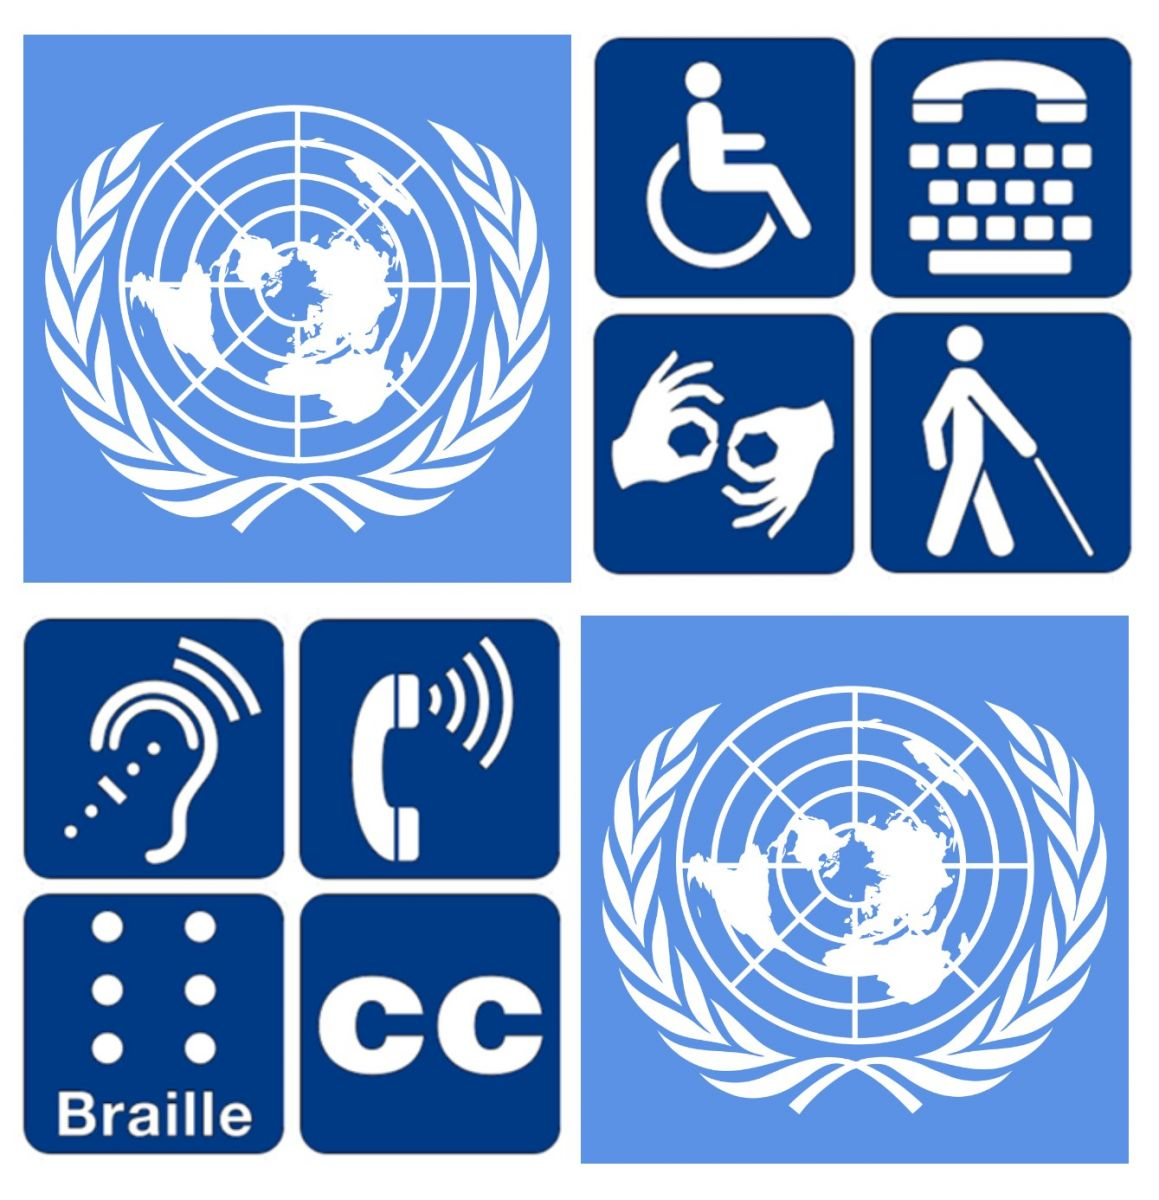 UN Logo and Accessible Signage